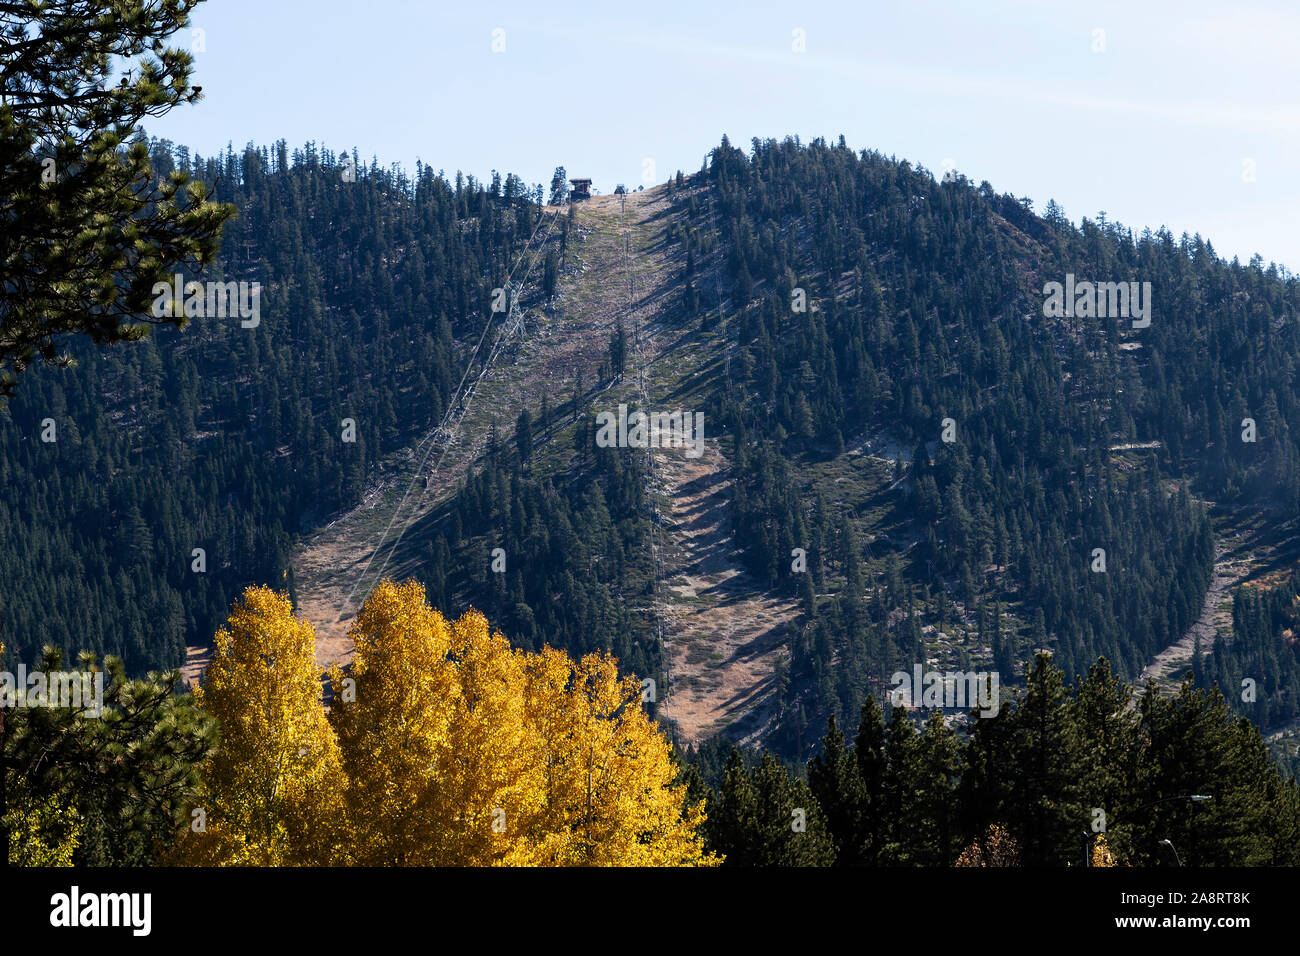 Ski Slope Runs Without Snow Late October Lake Tahoe California Autumn Leaves On Tree In Foreground Stock Photo